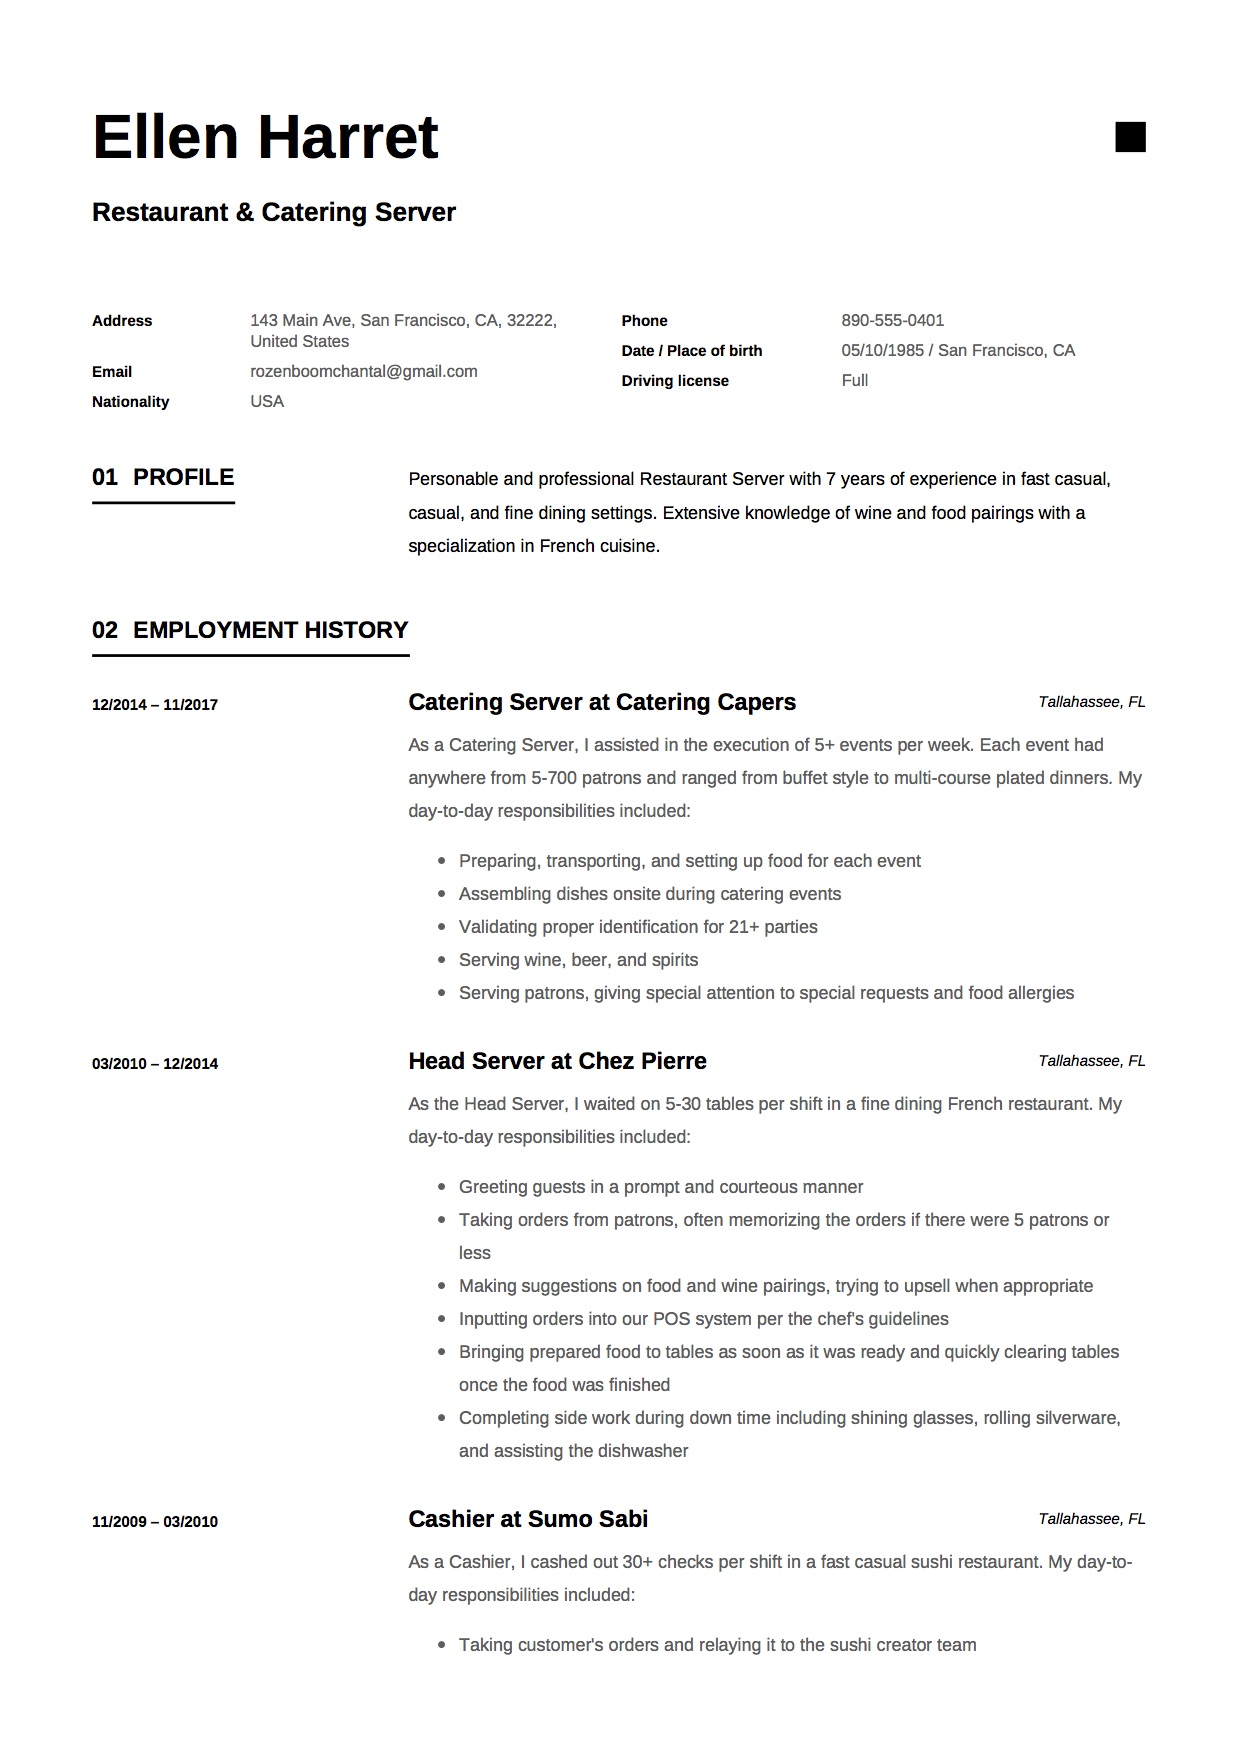 Resume   Restaurant U0026 Catering Server  Resume For Restaurant Server